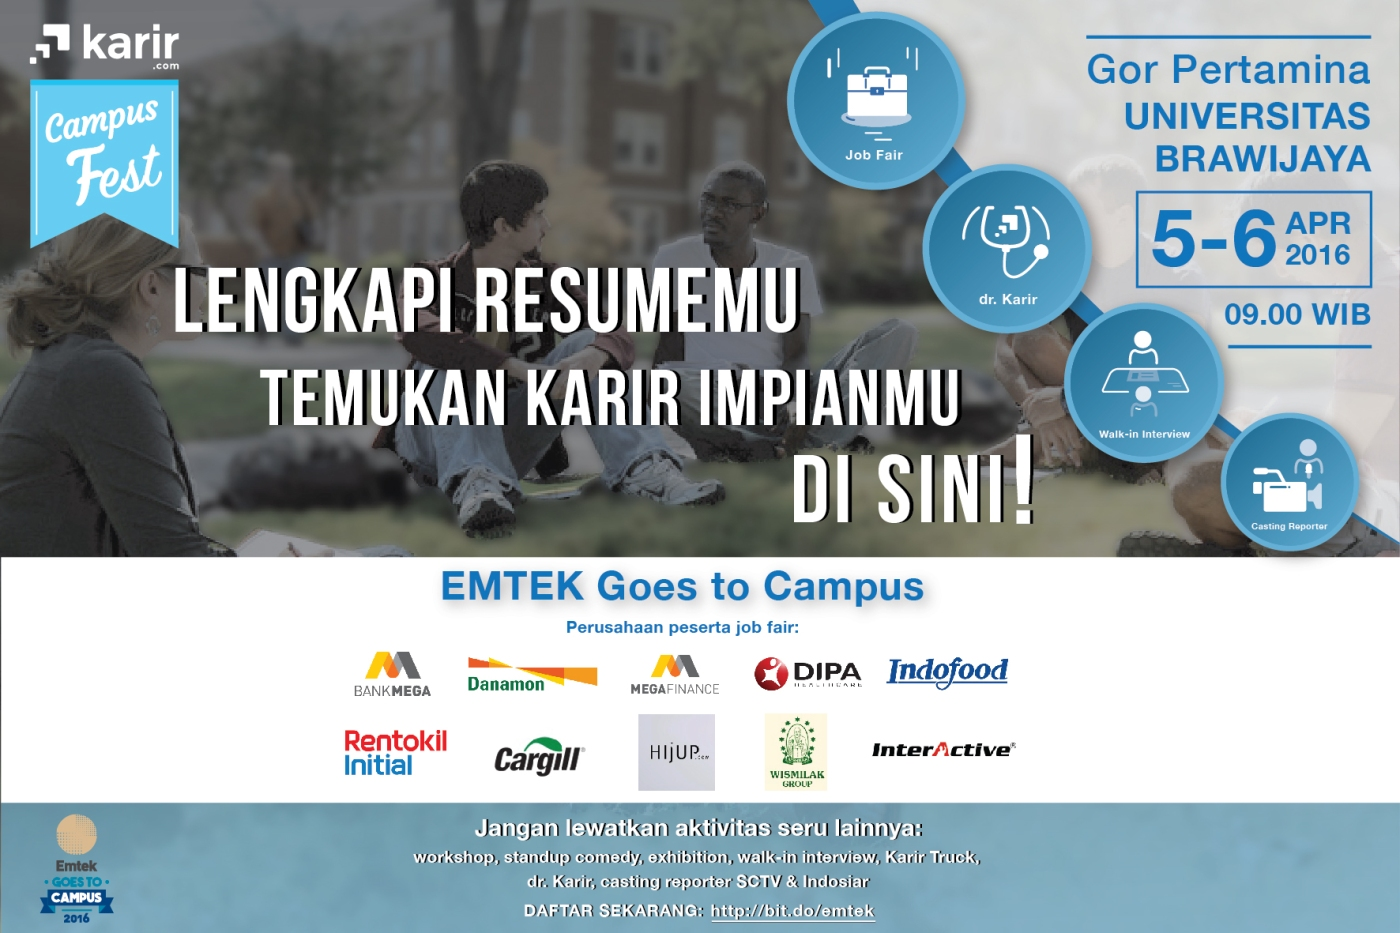 emtek goes to campus malang